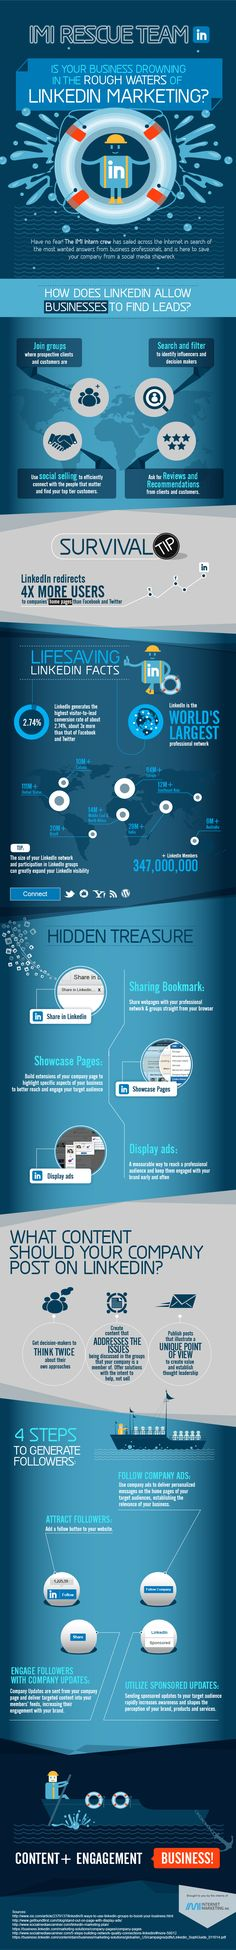 How Do You Use LinkedIn To Navigate The Rough Seas Of Social Selling? #infographic